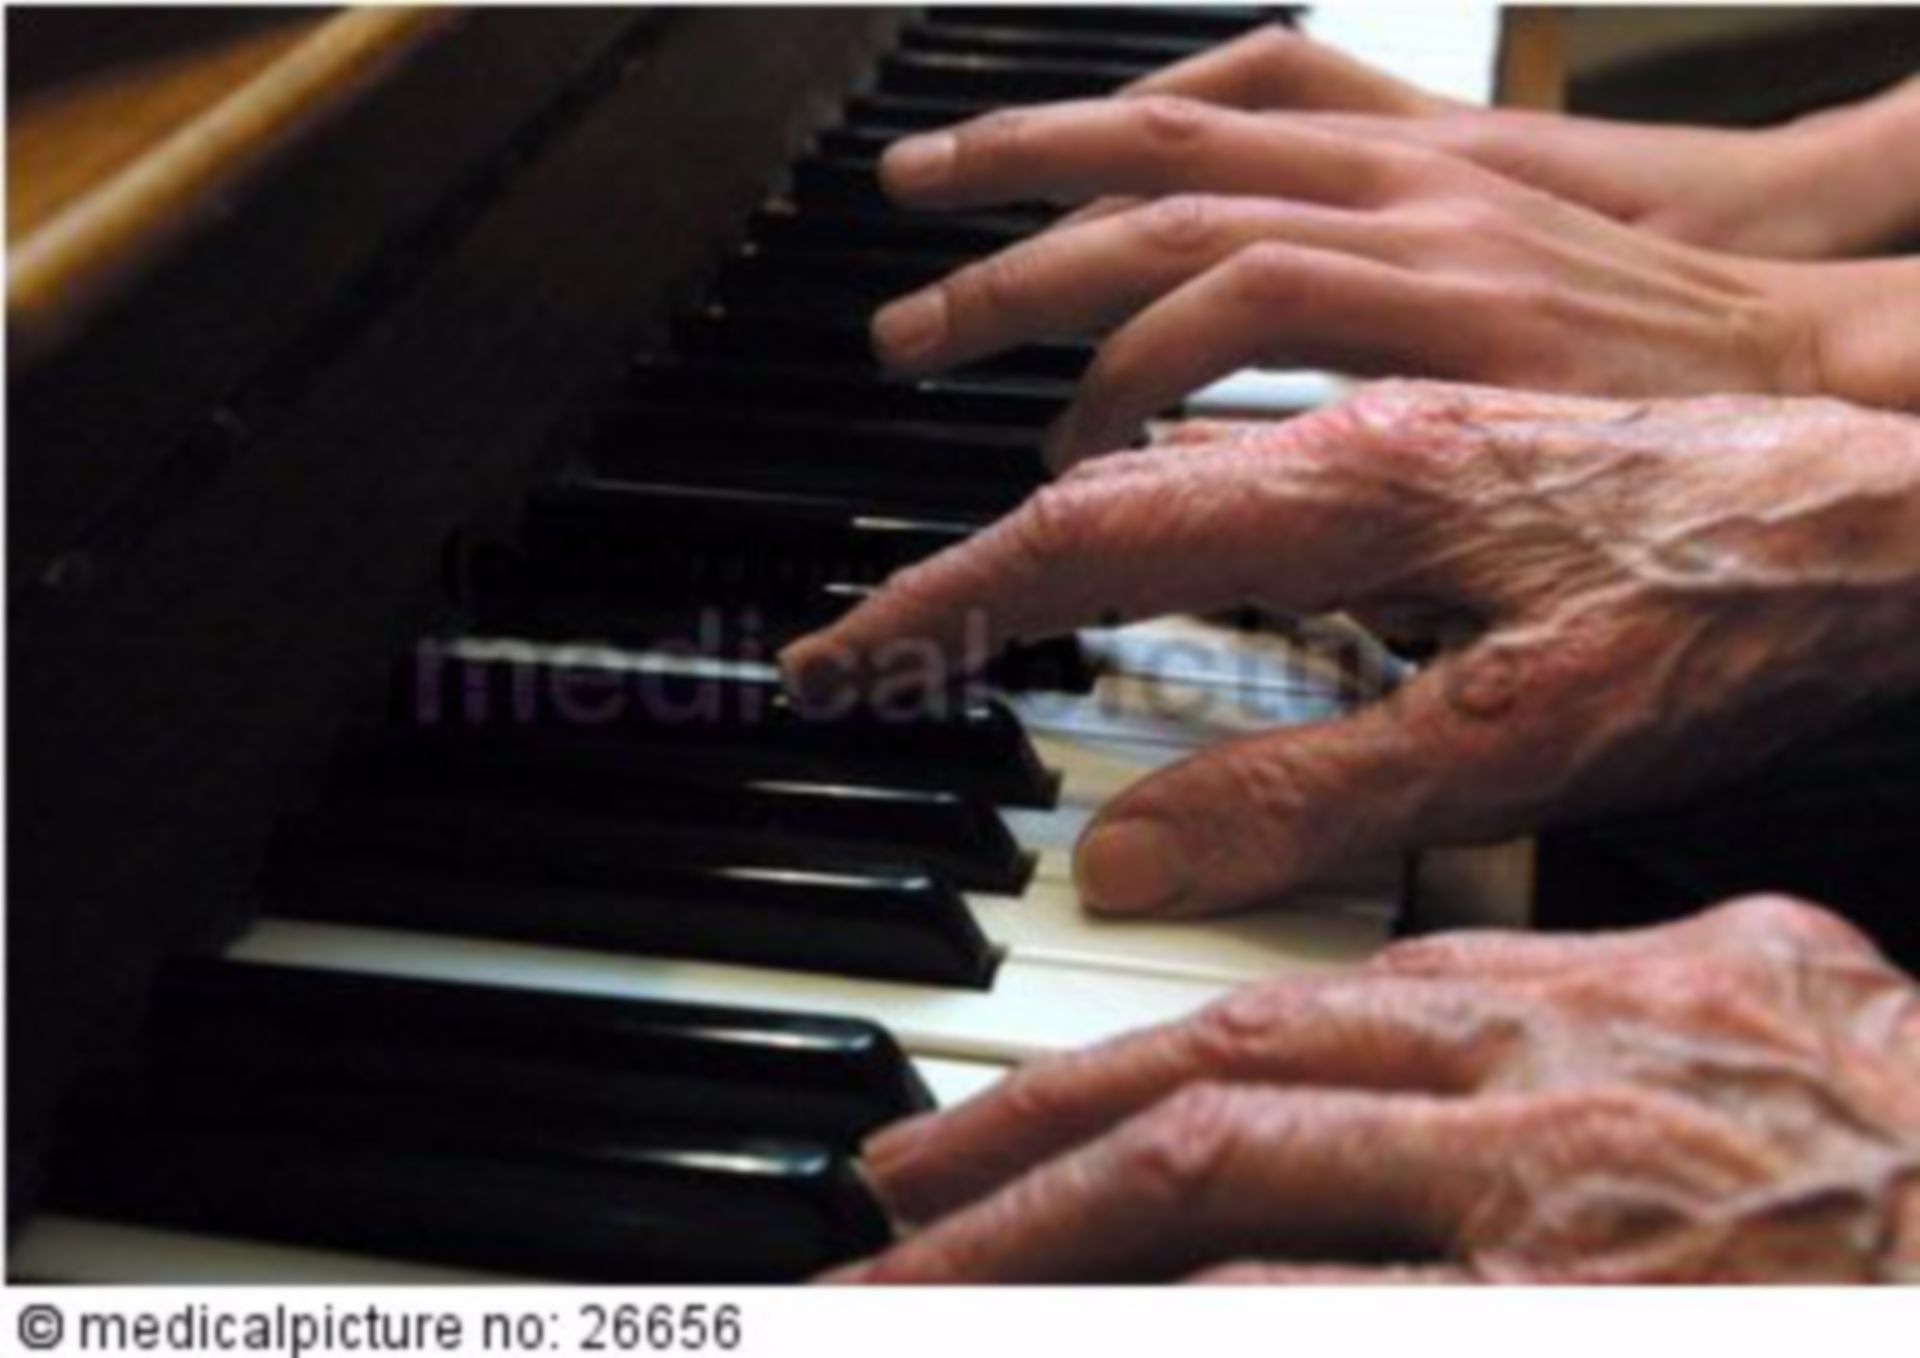 Old and young hands on a piano